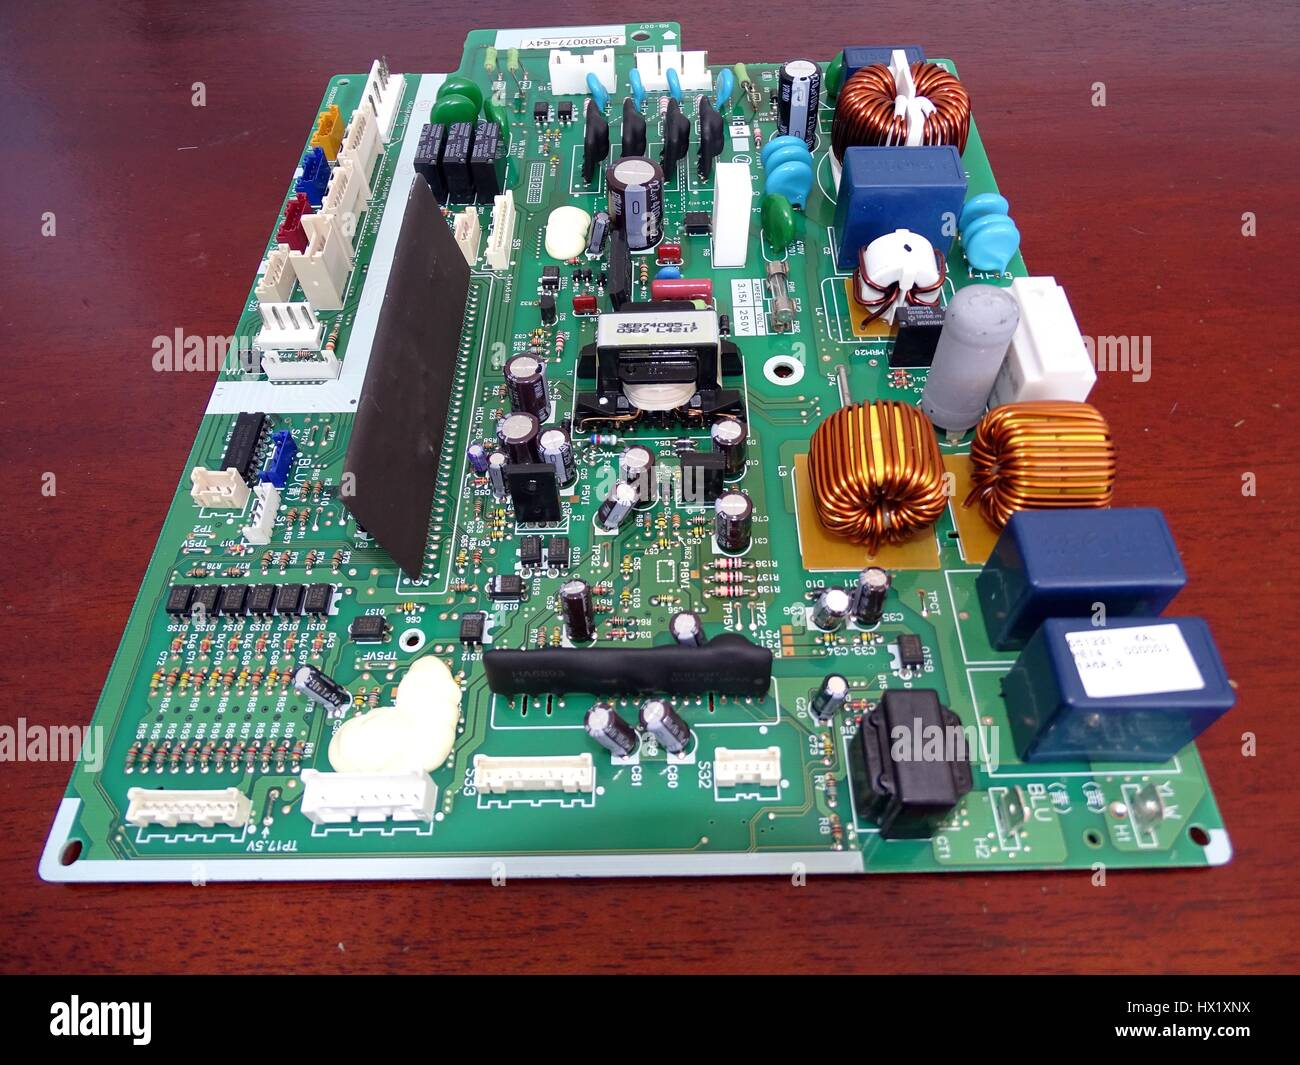 View of a circuit board - Stock Image